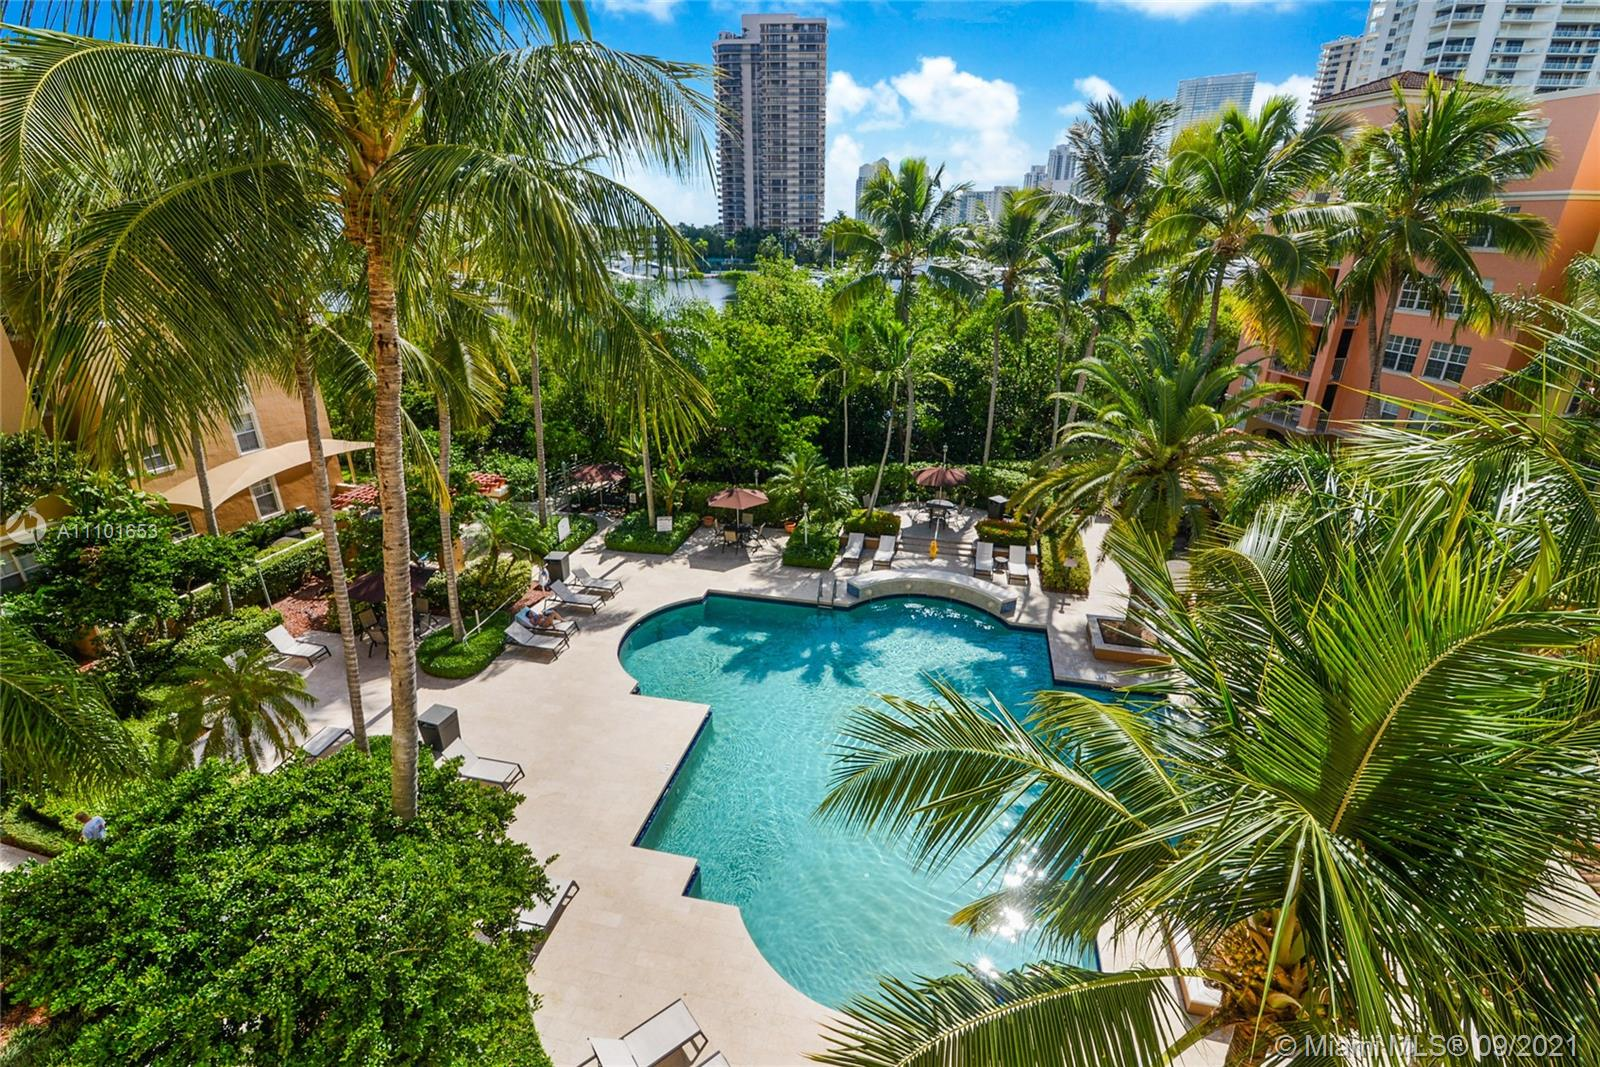 THE YACHT CLUB AT AVENTUR Condo,For Sale,THE YACHT CLUB AT AVENTUR Brickell,realty,broker,condos near me